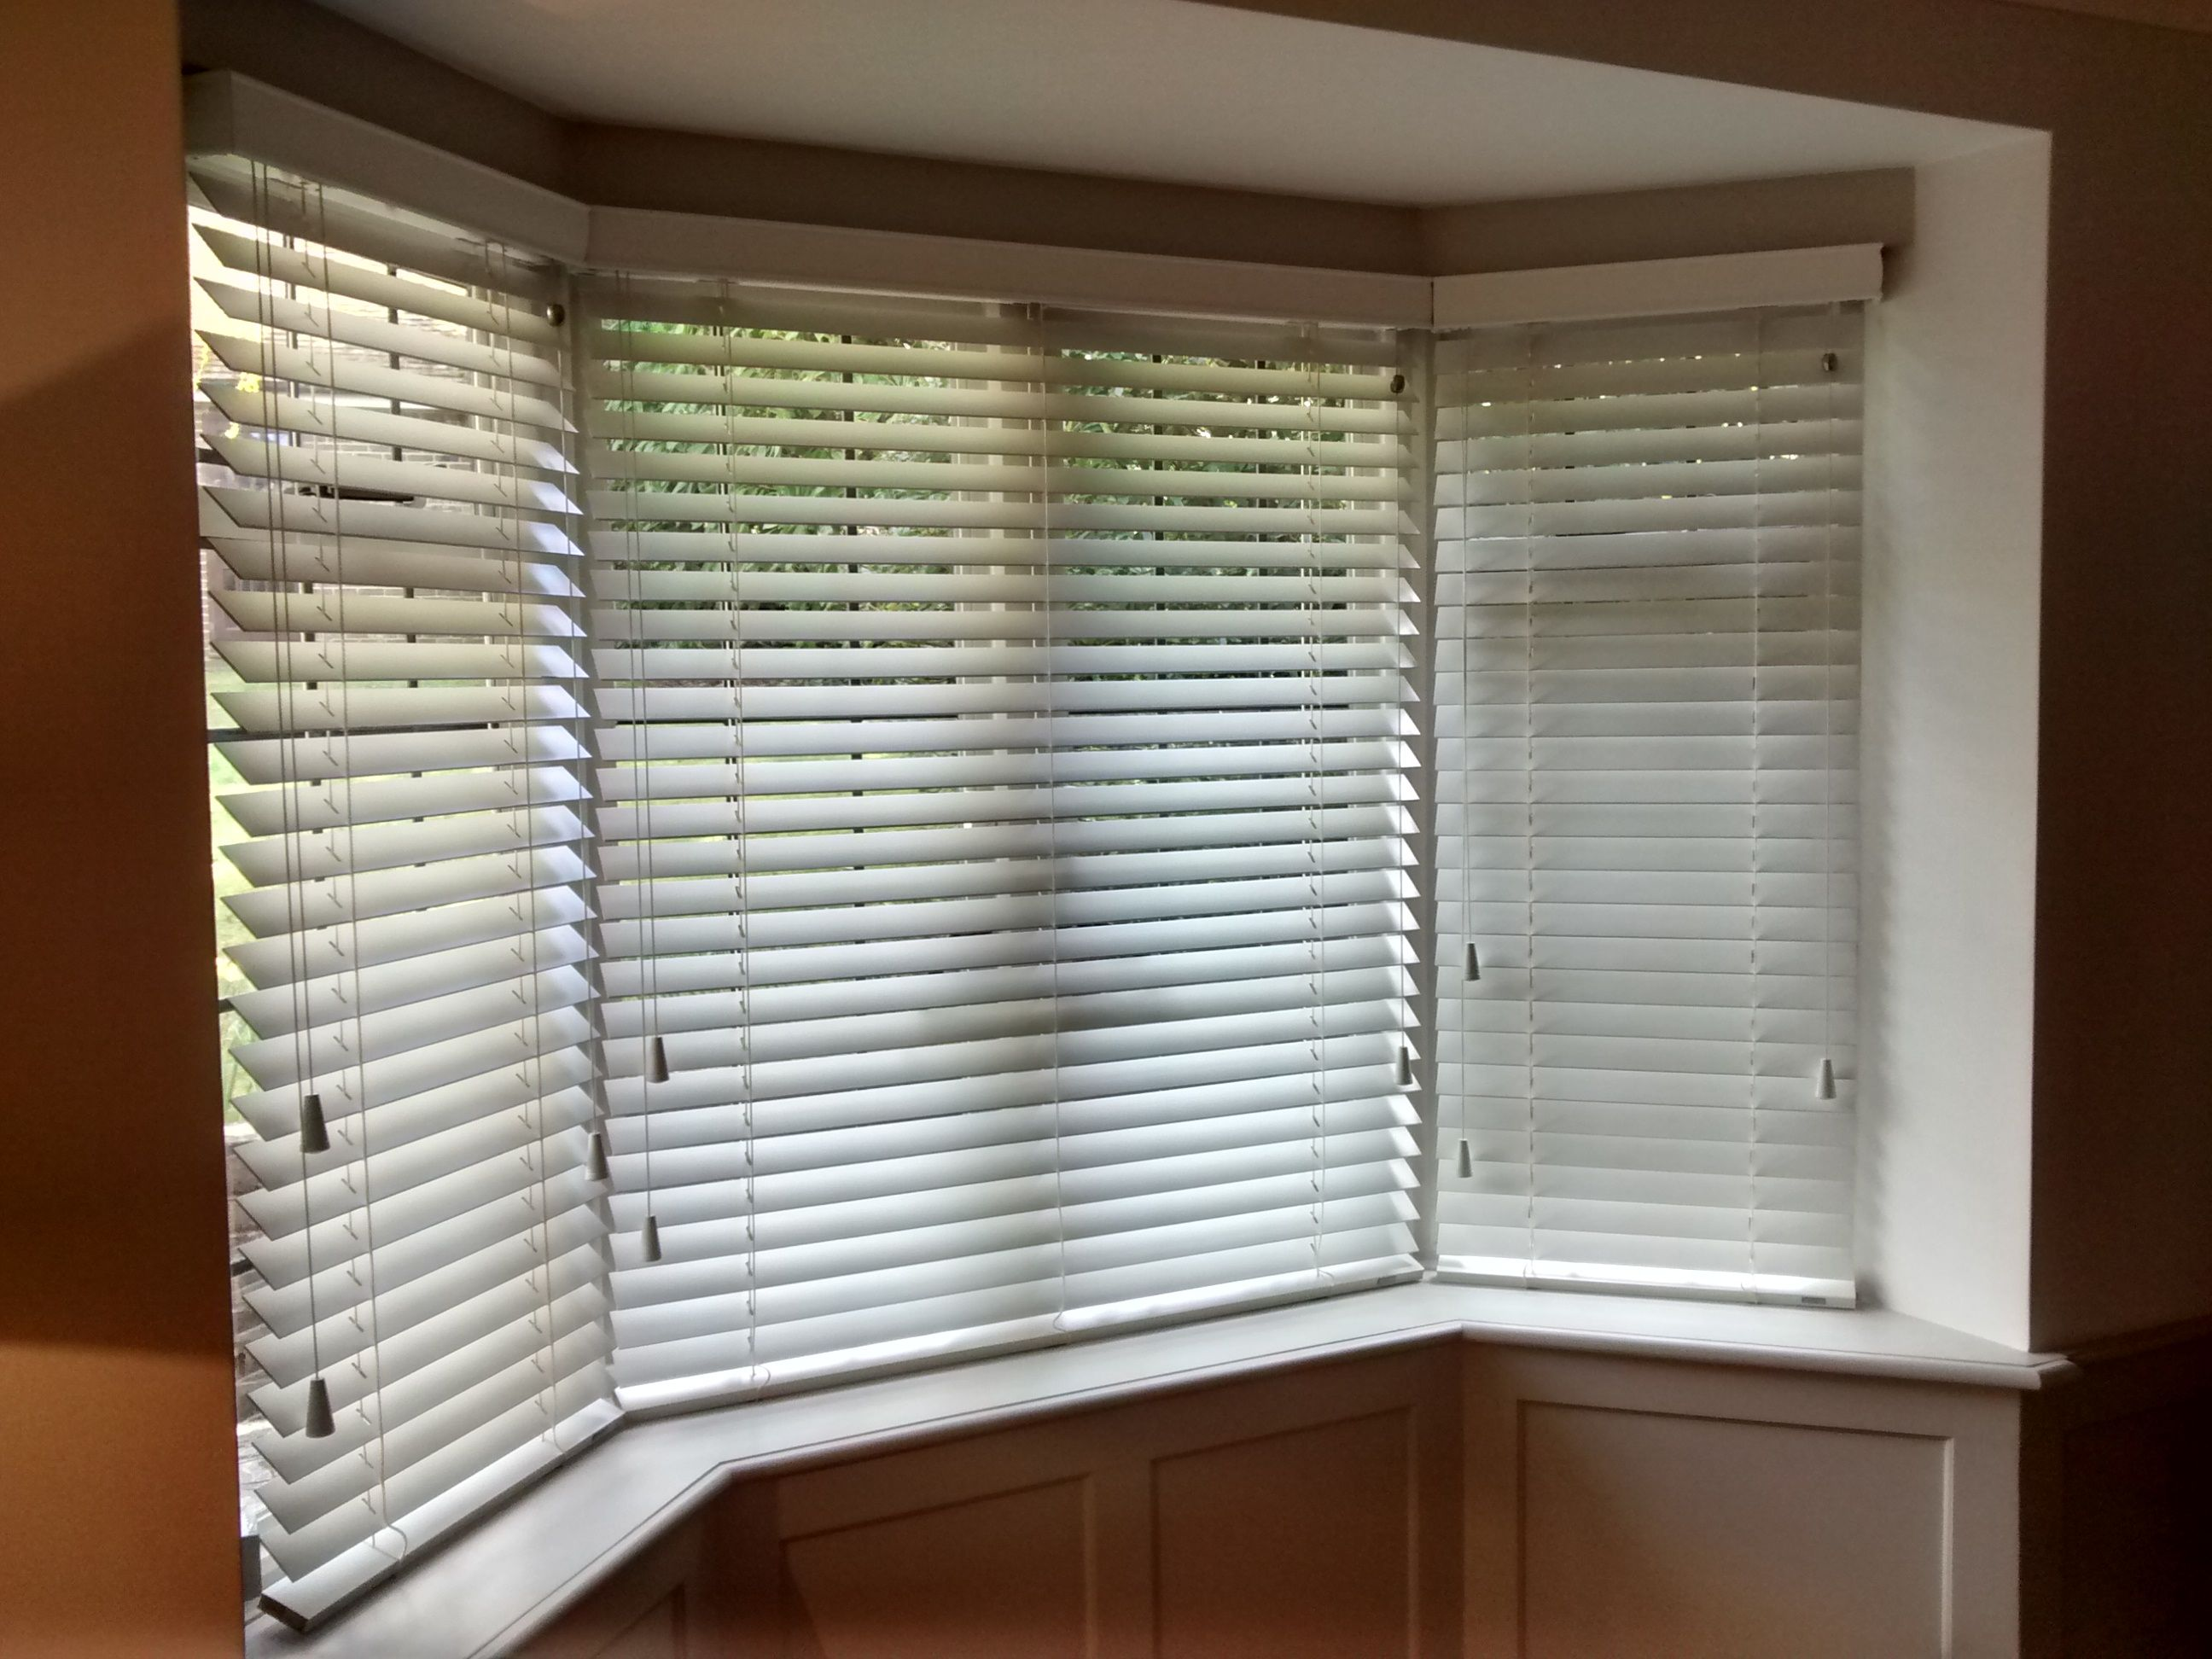 Wood Venetian Blinds For A Bay Window Supplied And Installed By The